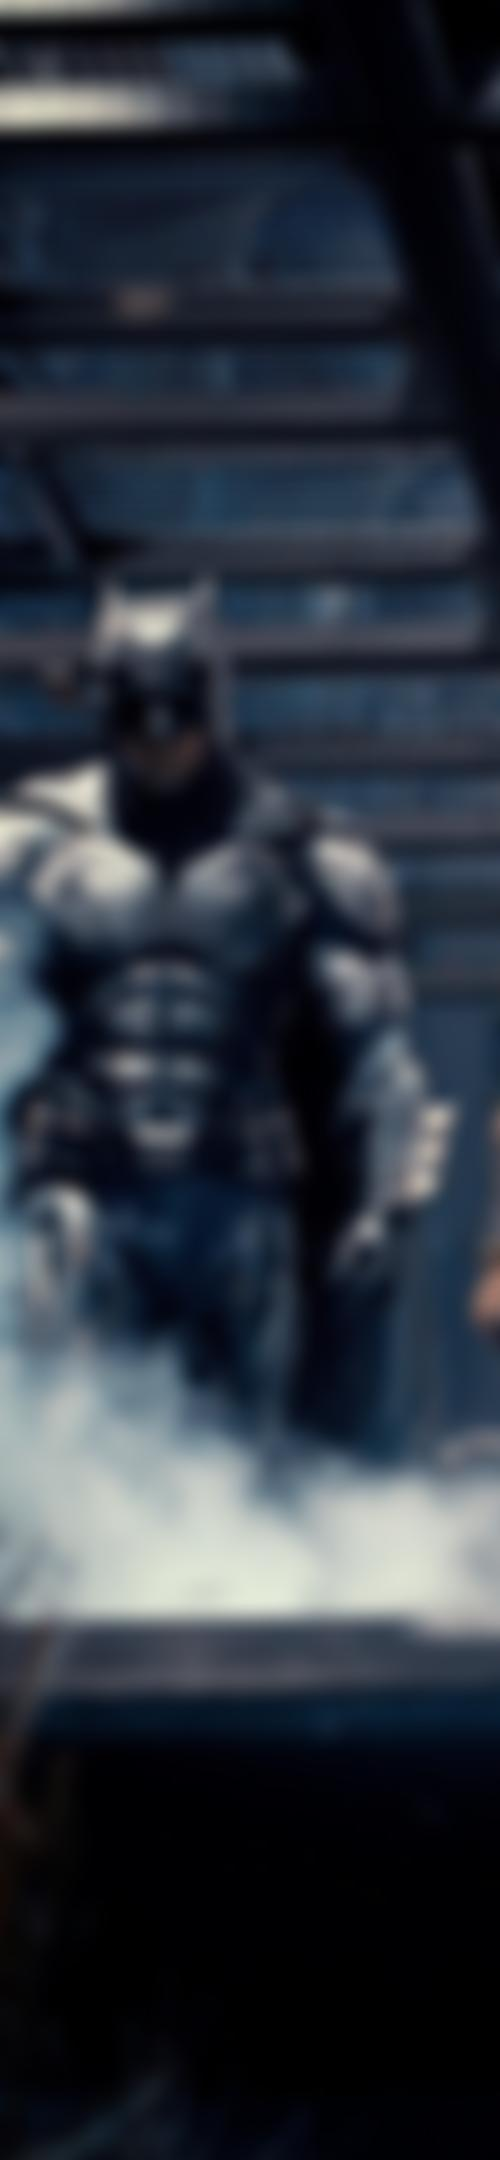 Image for Zack Snyder's Justice League